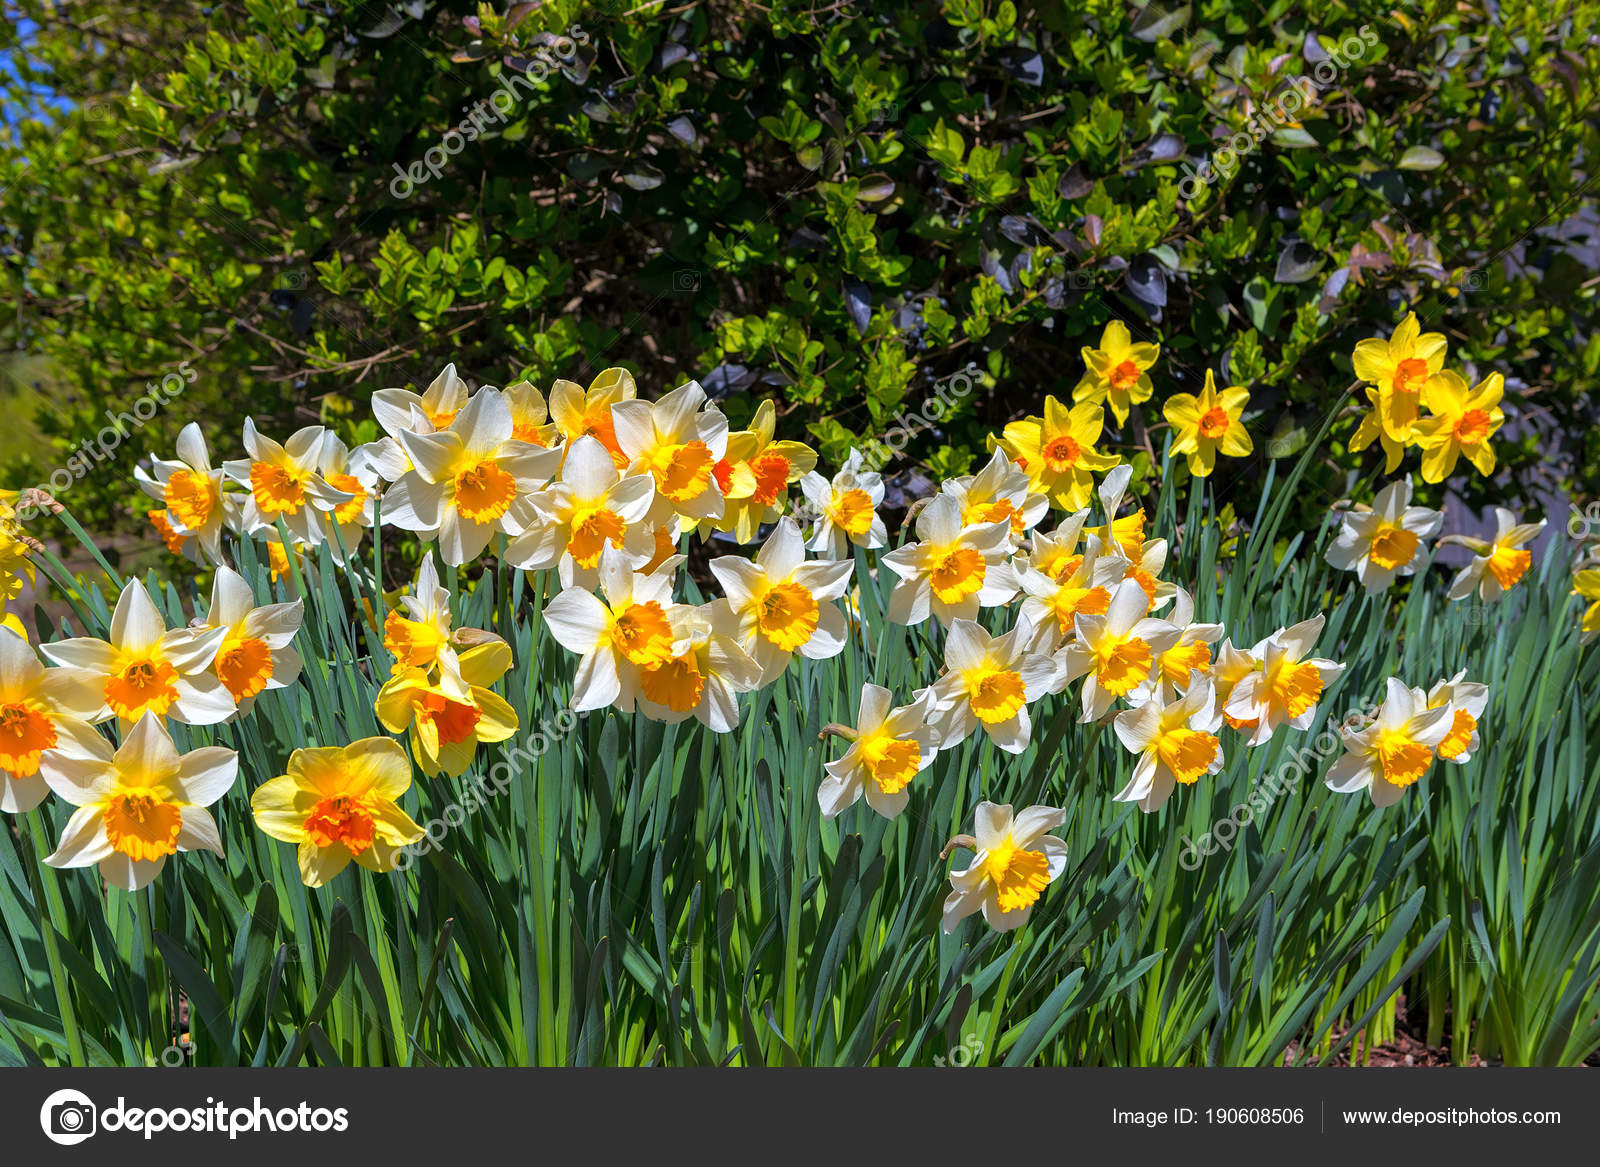 Daffodils Flowers Blooming in Spring     Stock Photo      jpldesigns     Daffodil Flowers blooming in the garden during spring season     Photo by  jpldesigns